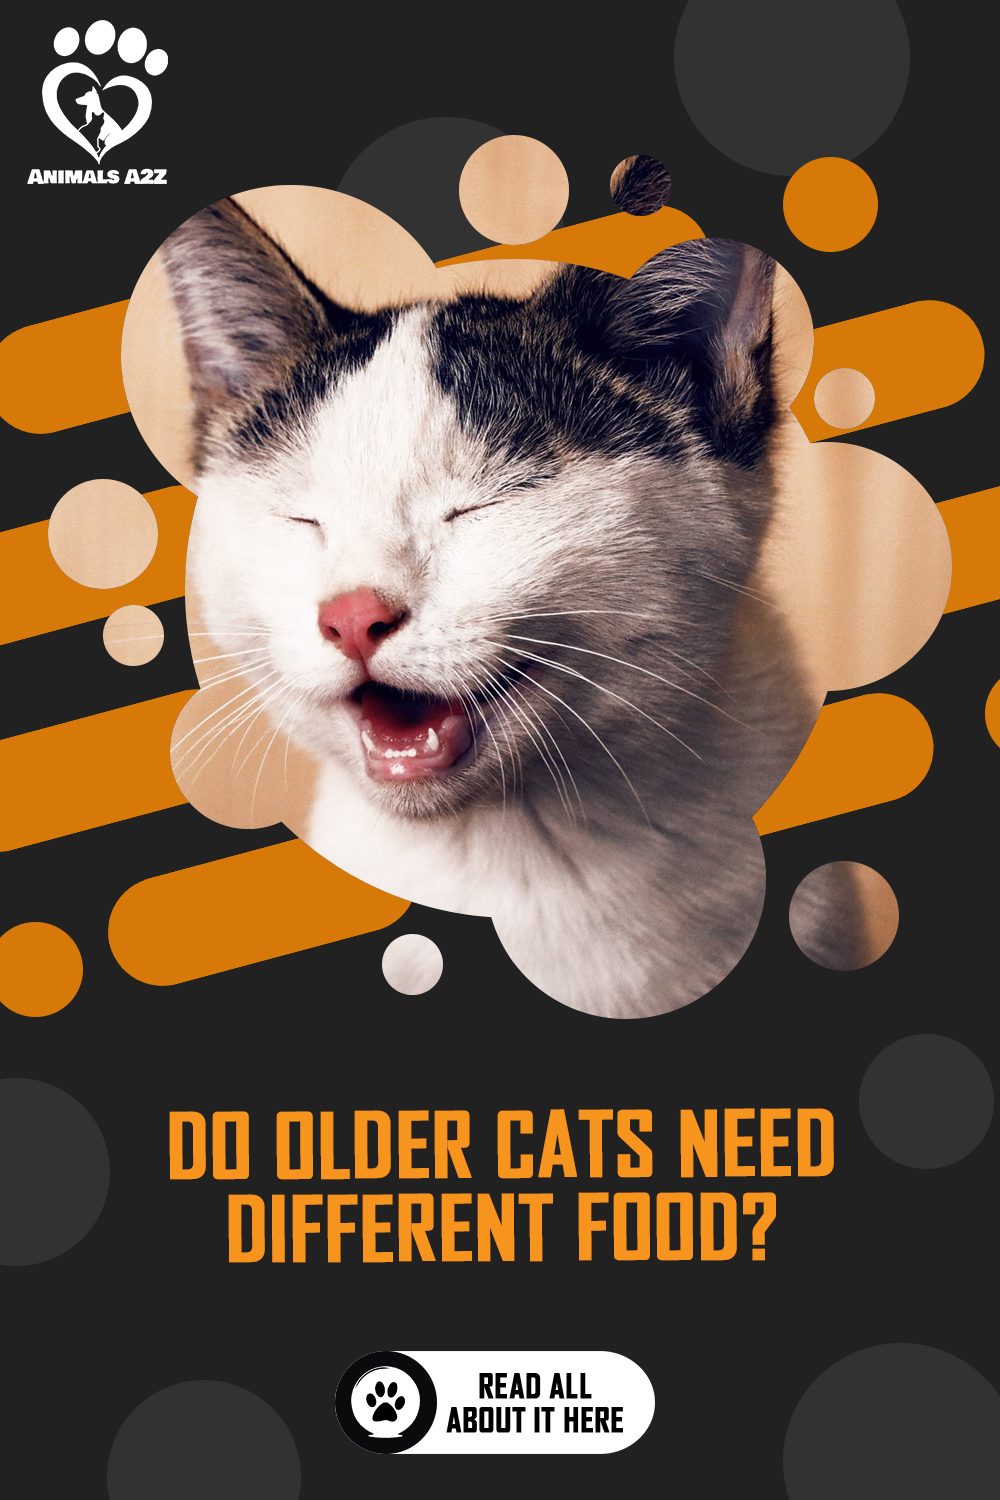 Do Older Cats Need Different Foods Detailed Answer In 2020 Older Cats Cat Facts Cat Questions